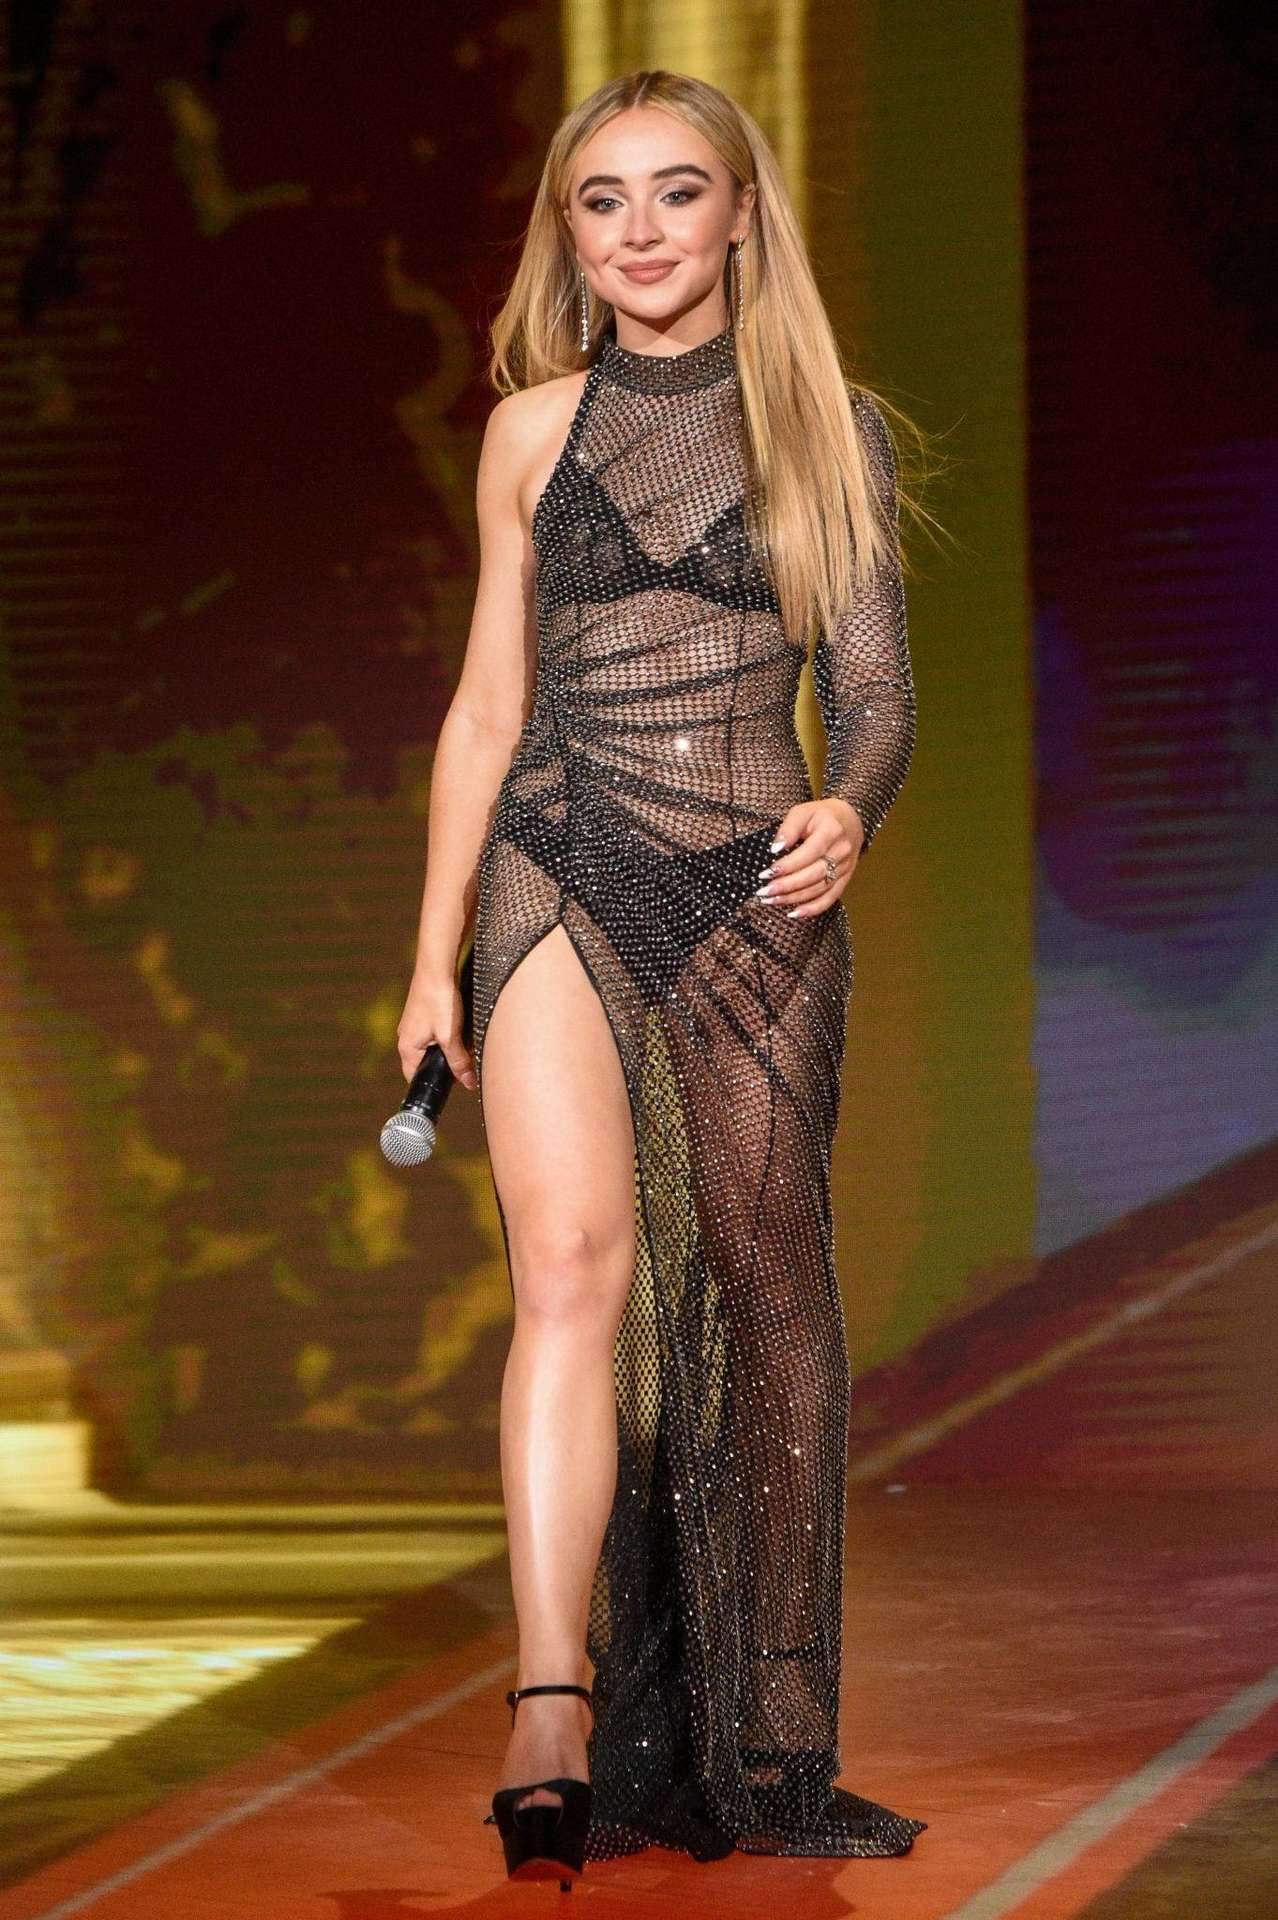 Sabrina Carpenter in a See-Through Dress at 2020 MTV Movie & TV Awards: Greatest Of All Time in Los Angeles